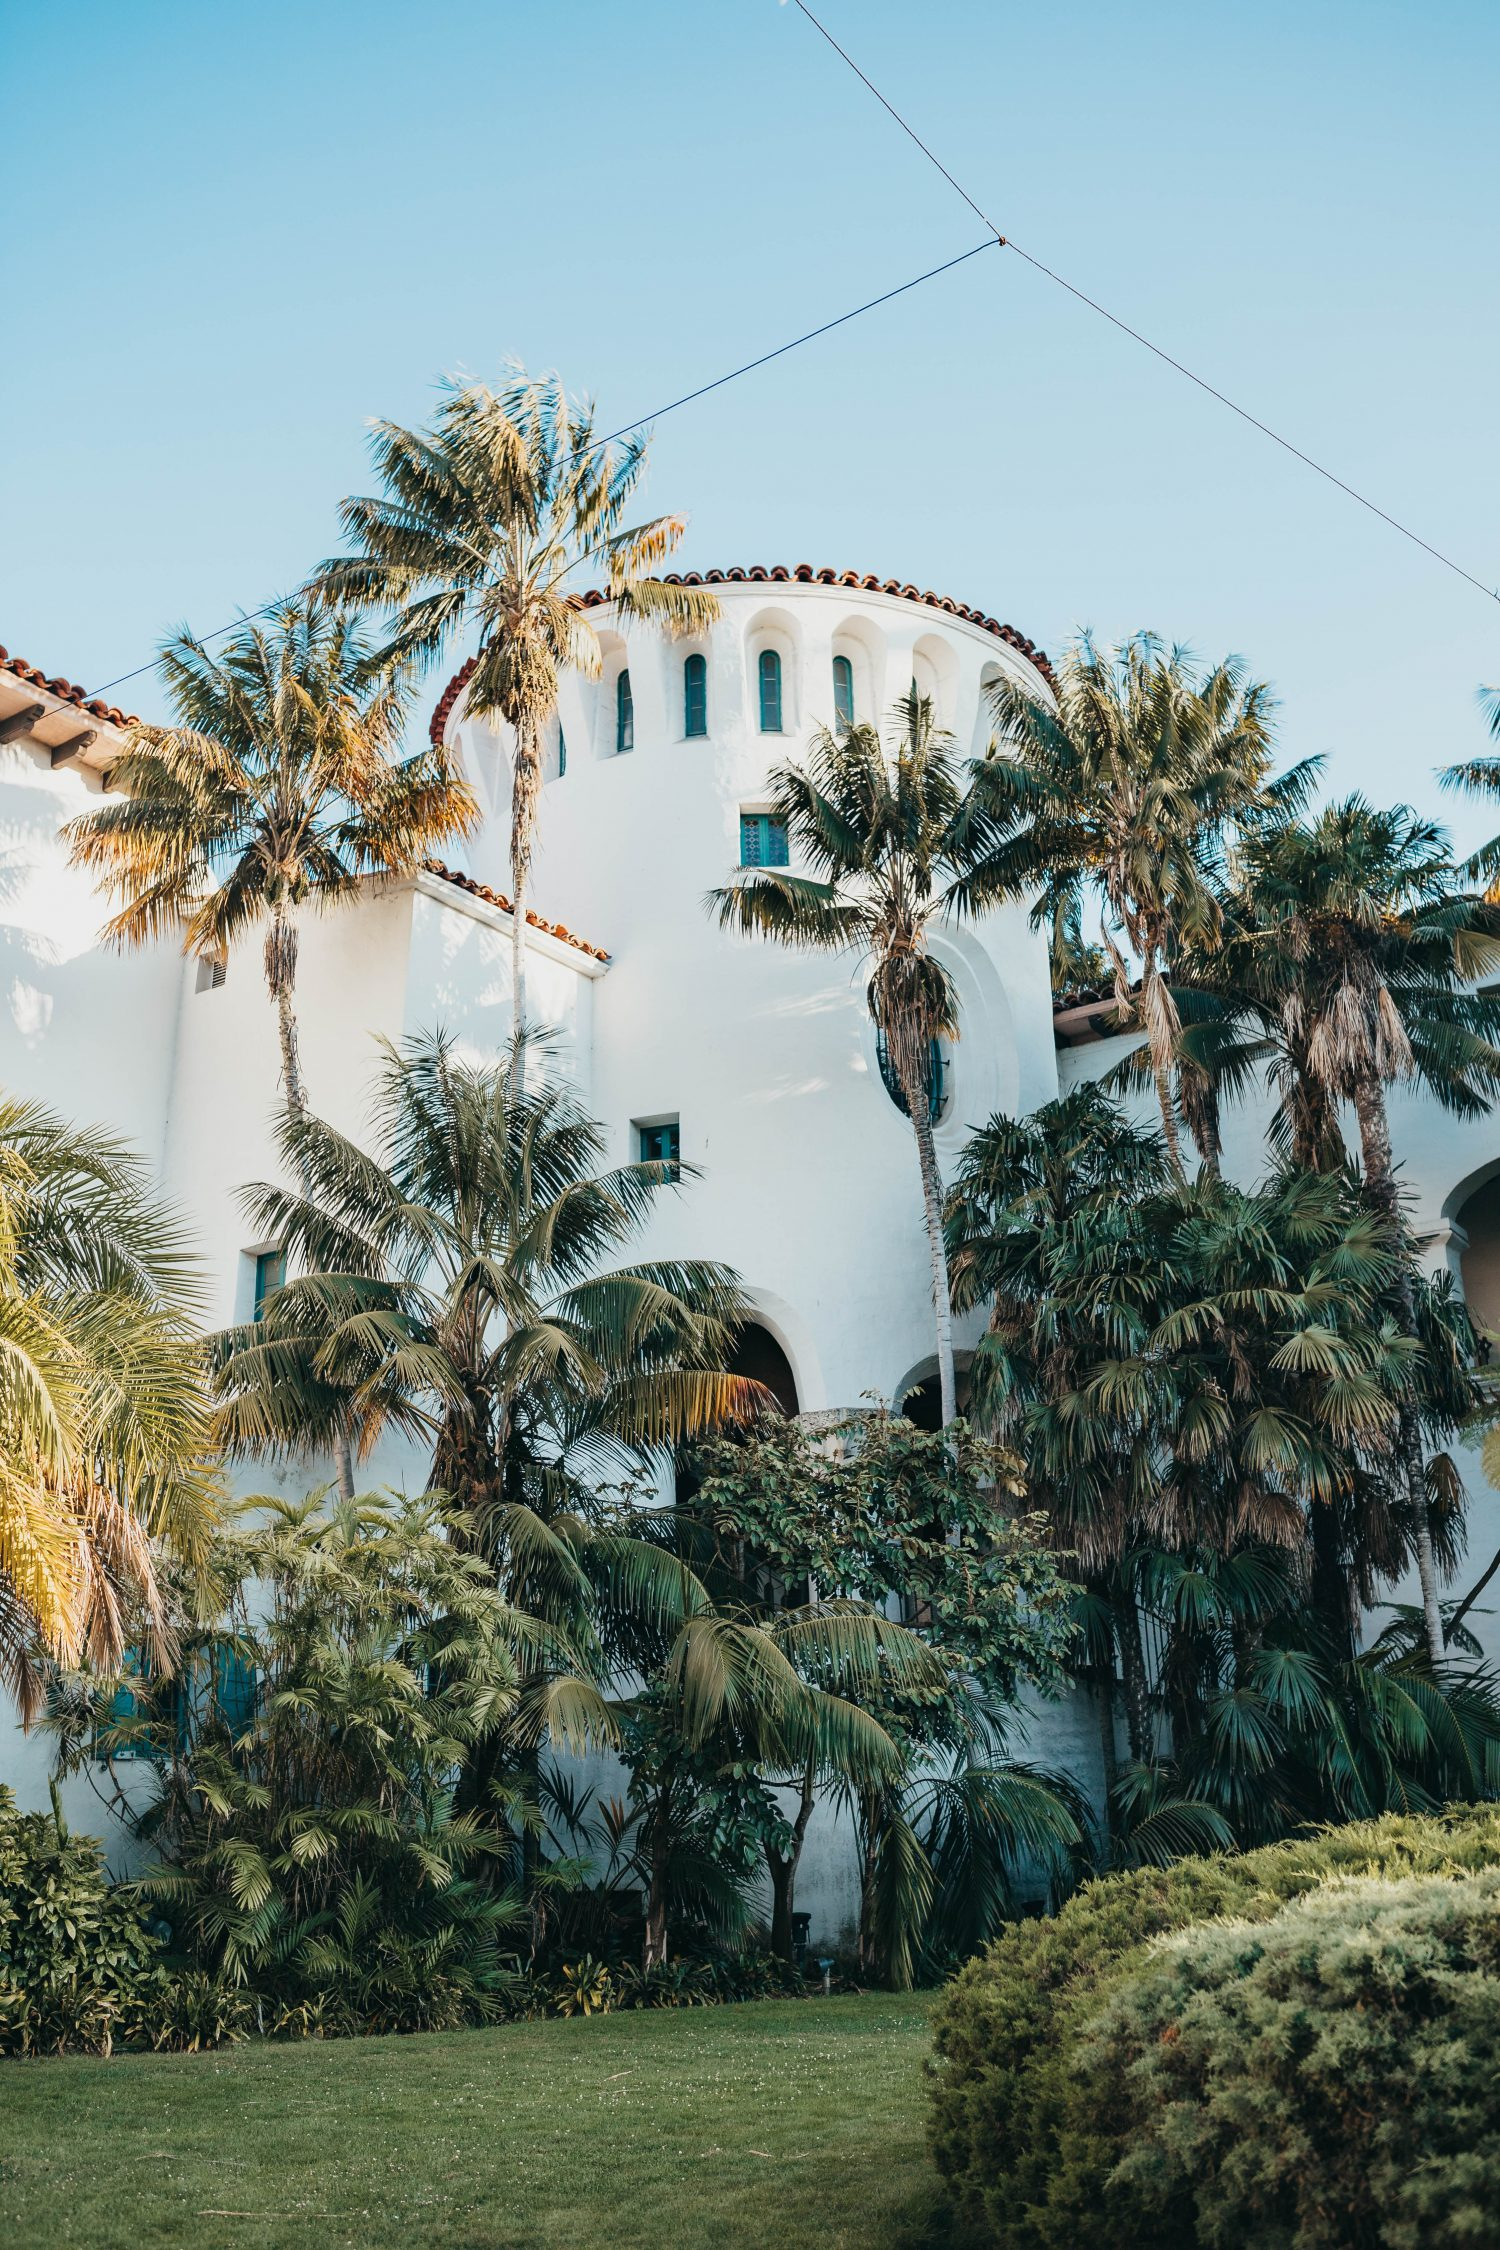 How to Spend 2 Days in Santa Barbara with Young Kids